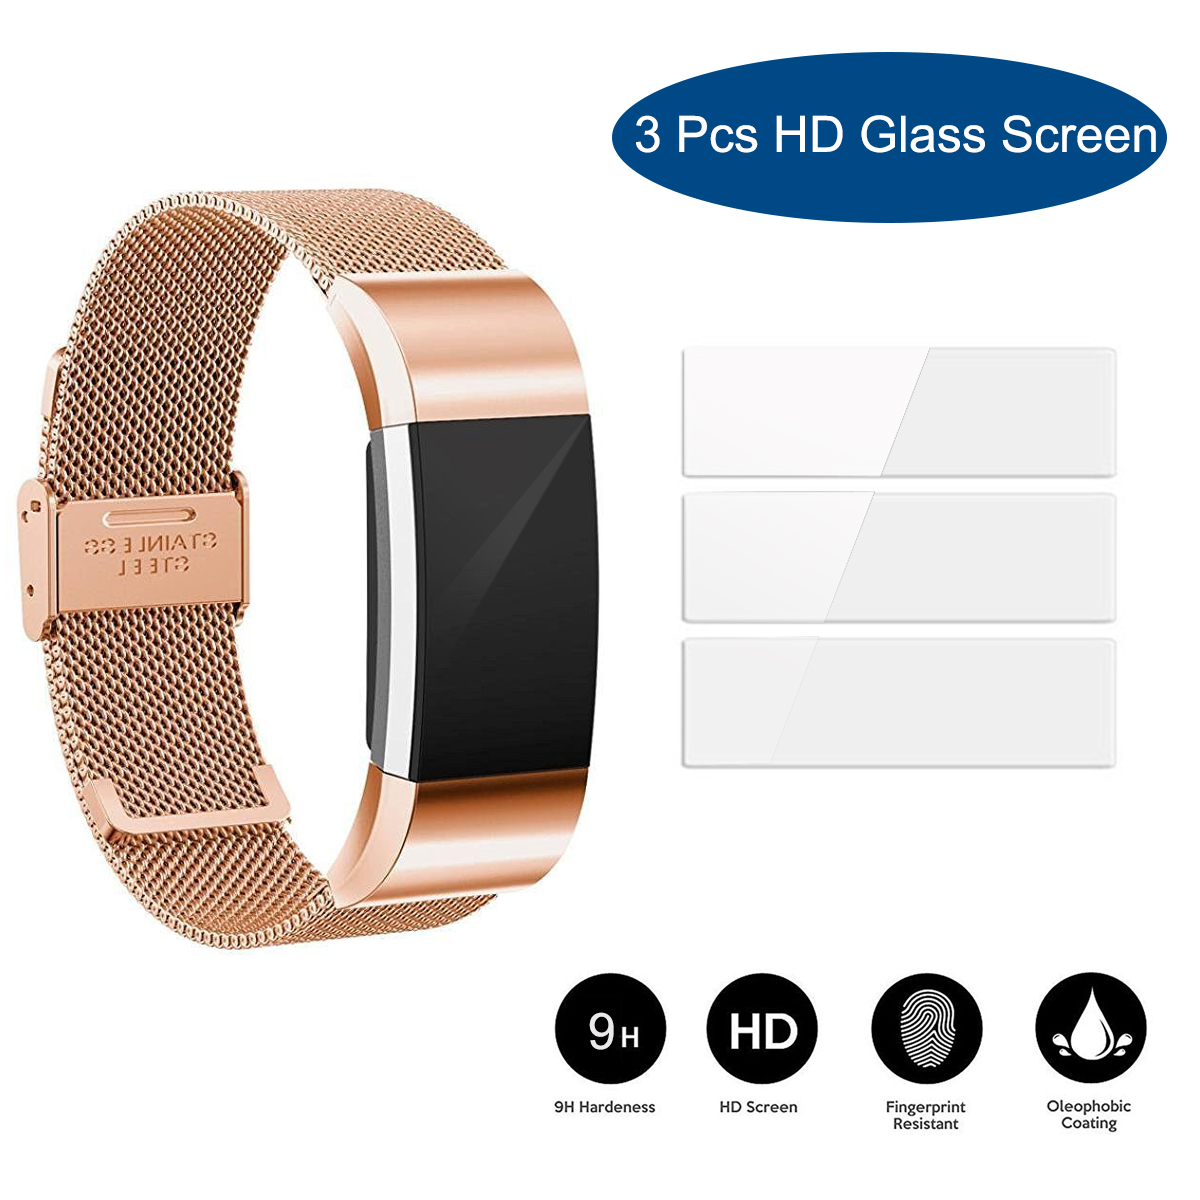 3Packs HD Clear Screen Protectors Film Cover Shield for Fitbit Charge 2